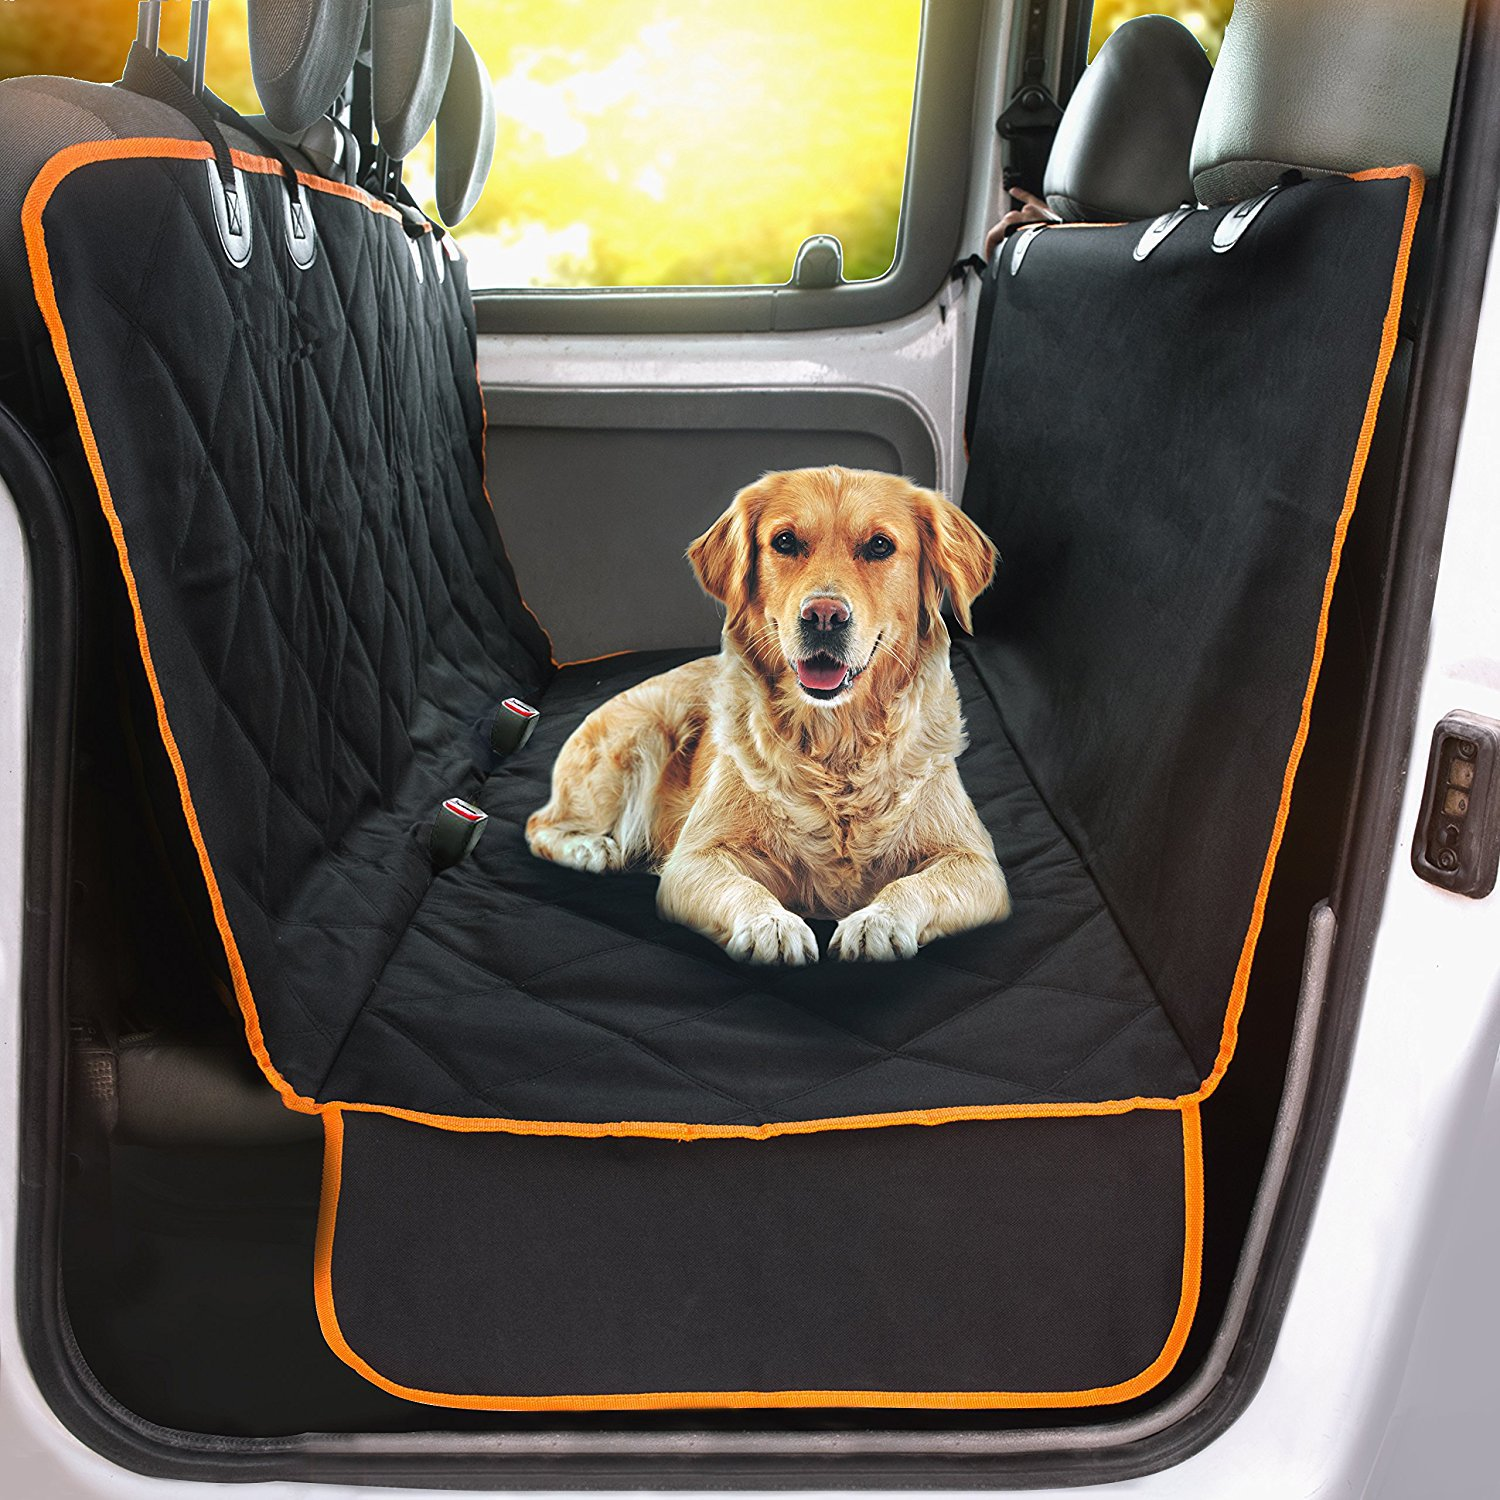 Dog Seat Cover Car Seat Cover for Pets Pet Seat Cover Hammock